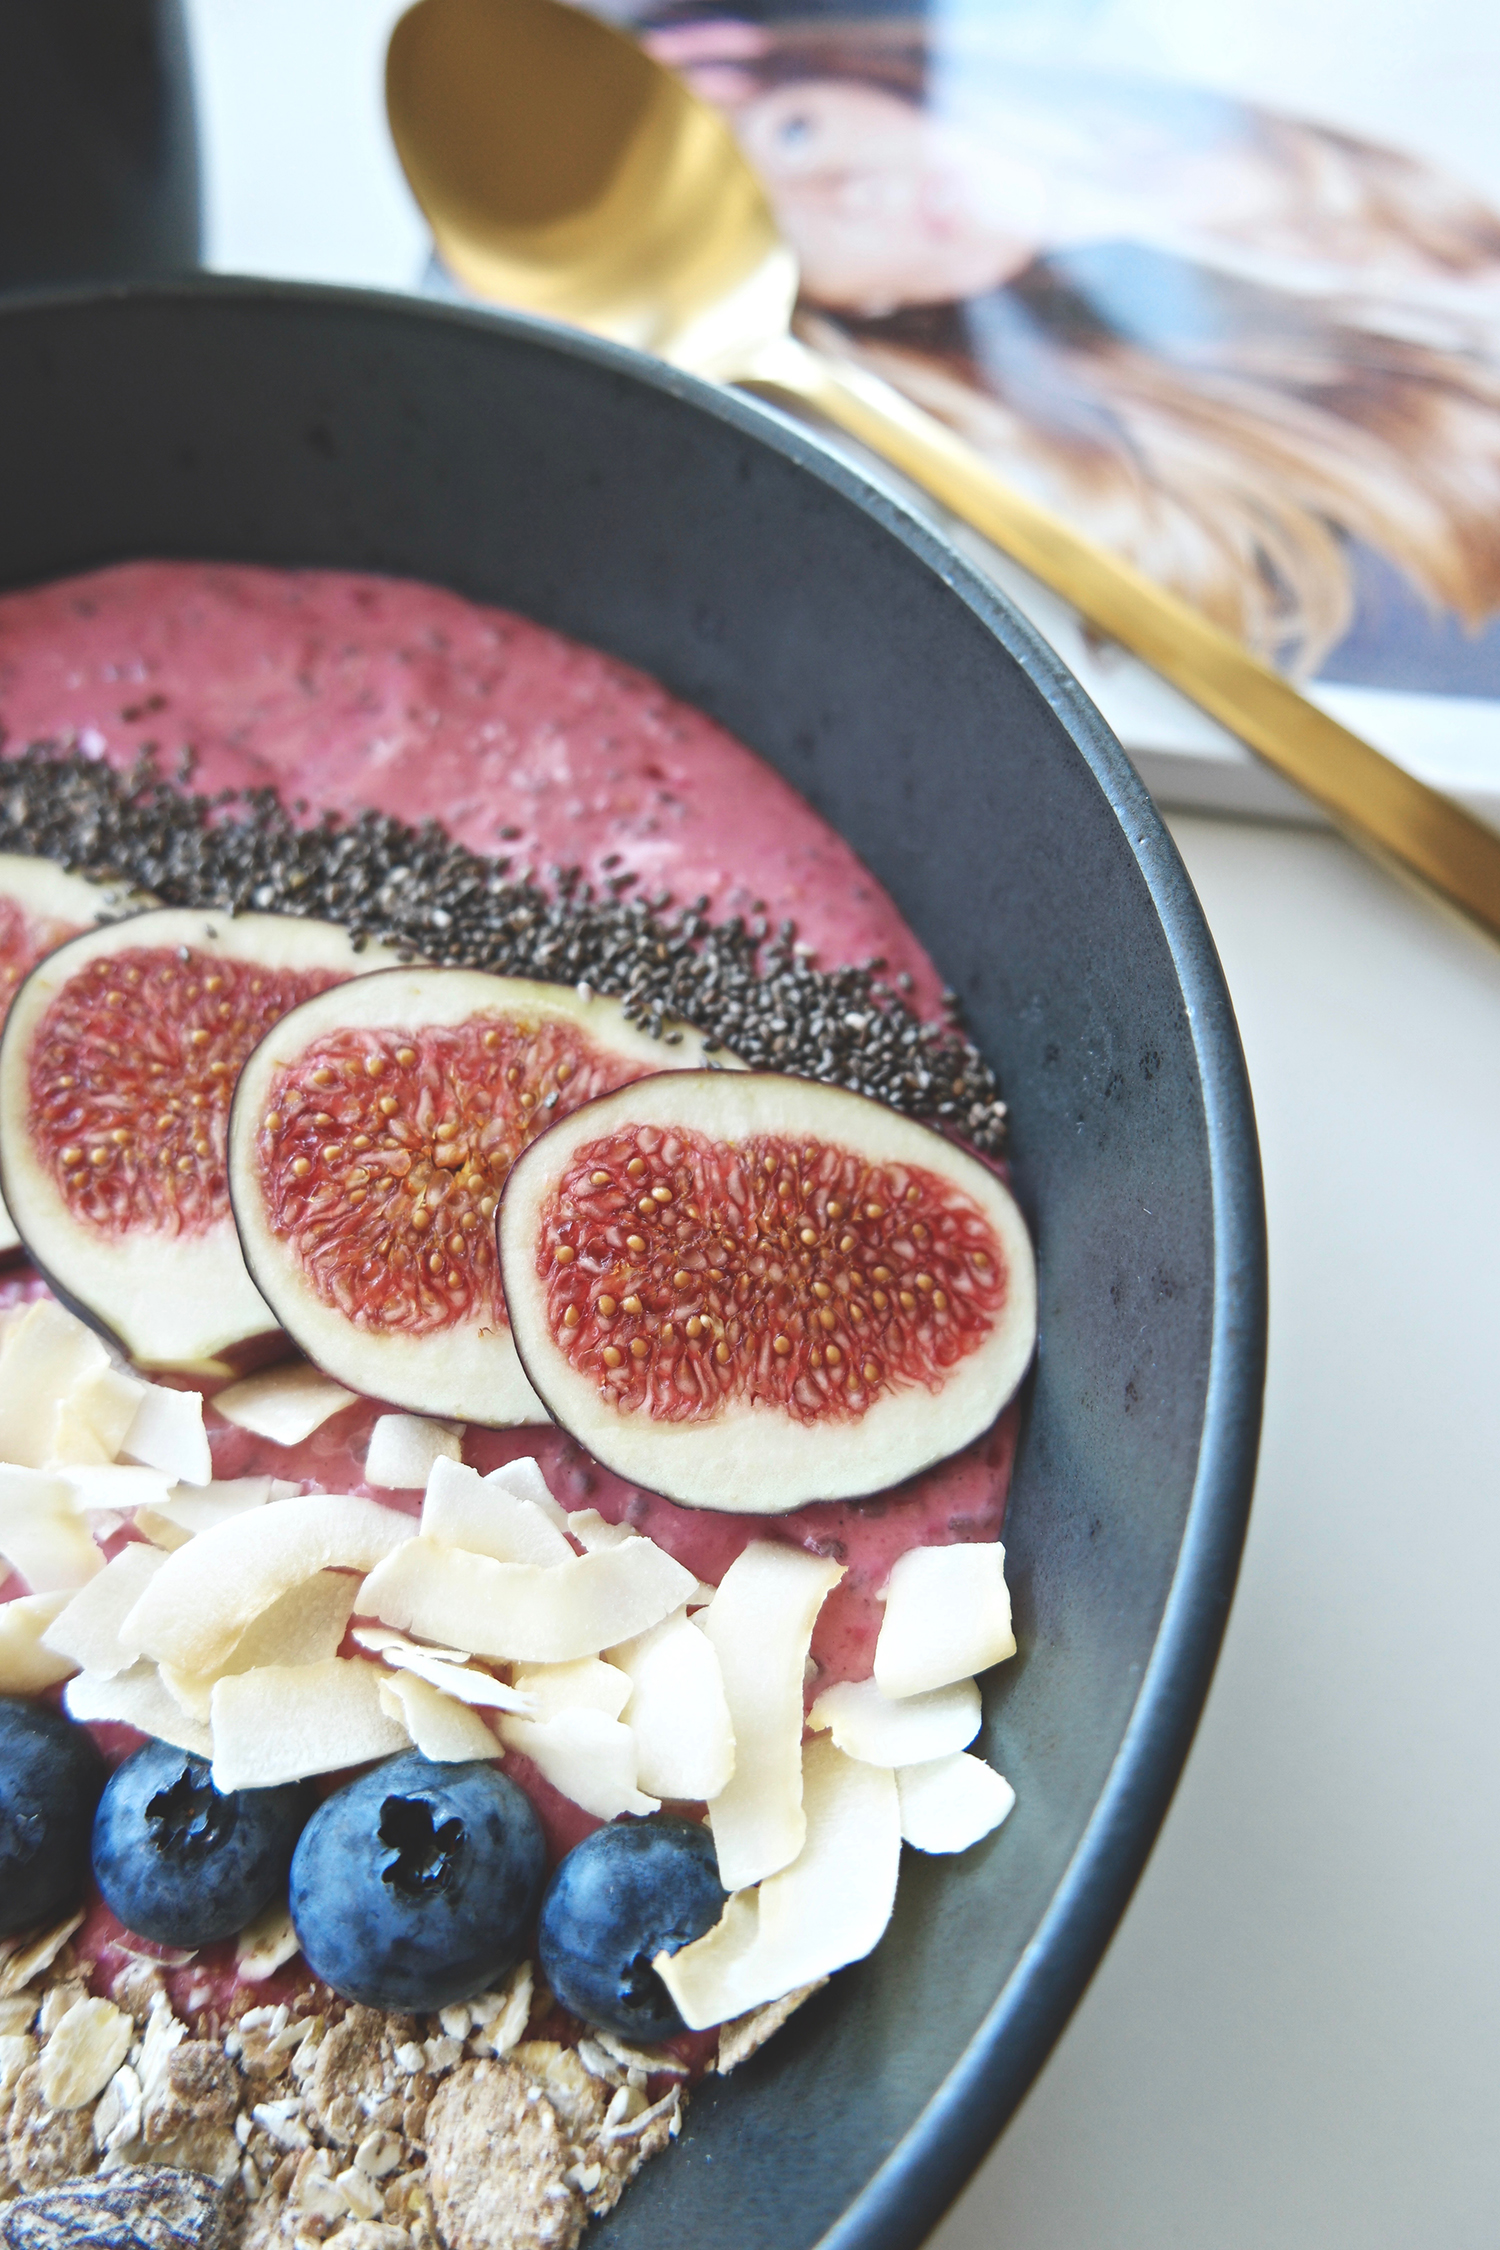 Raspberry & Banana Smoothie Bowl